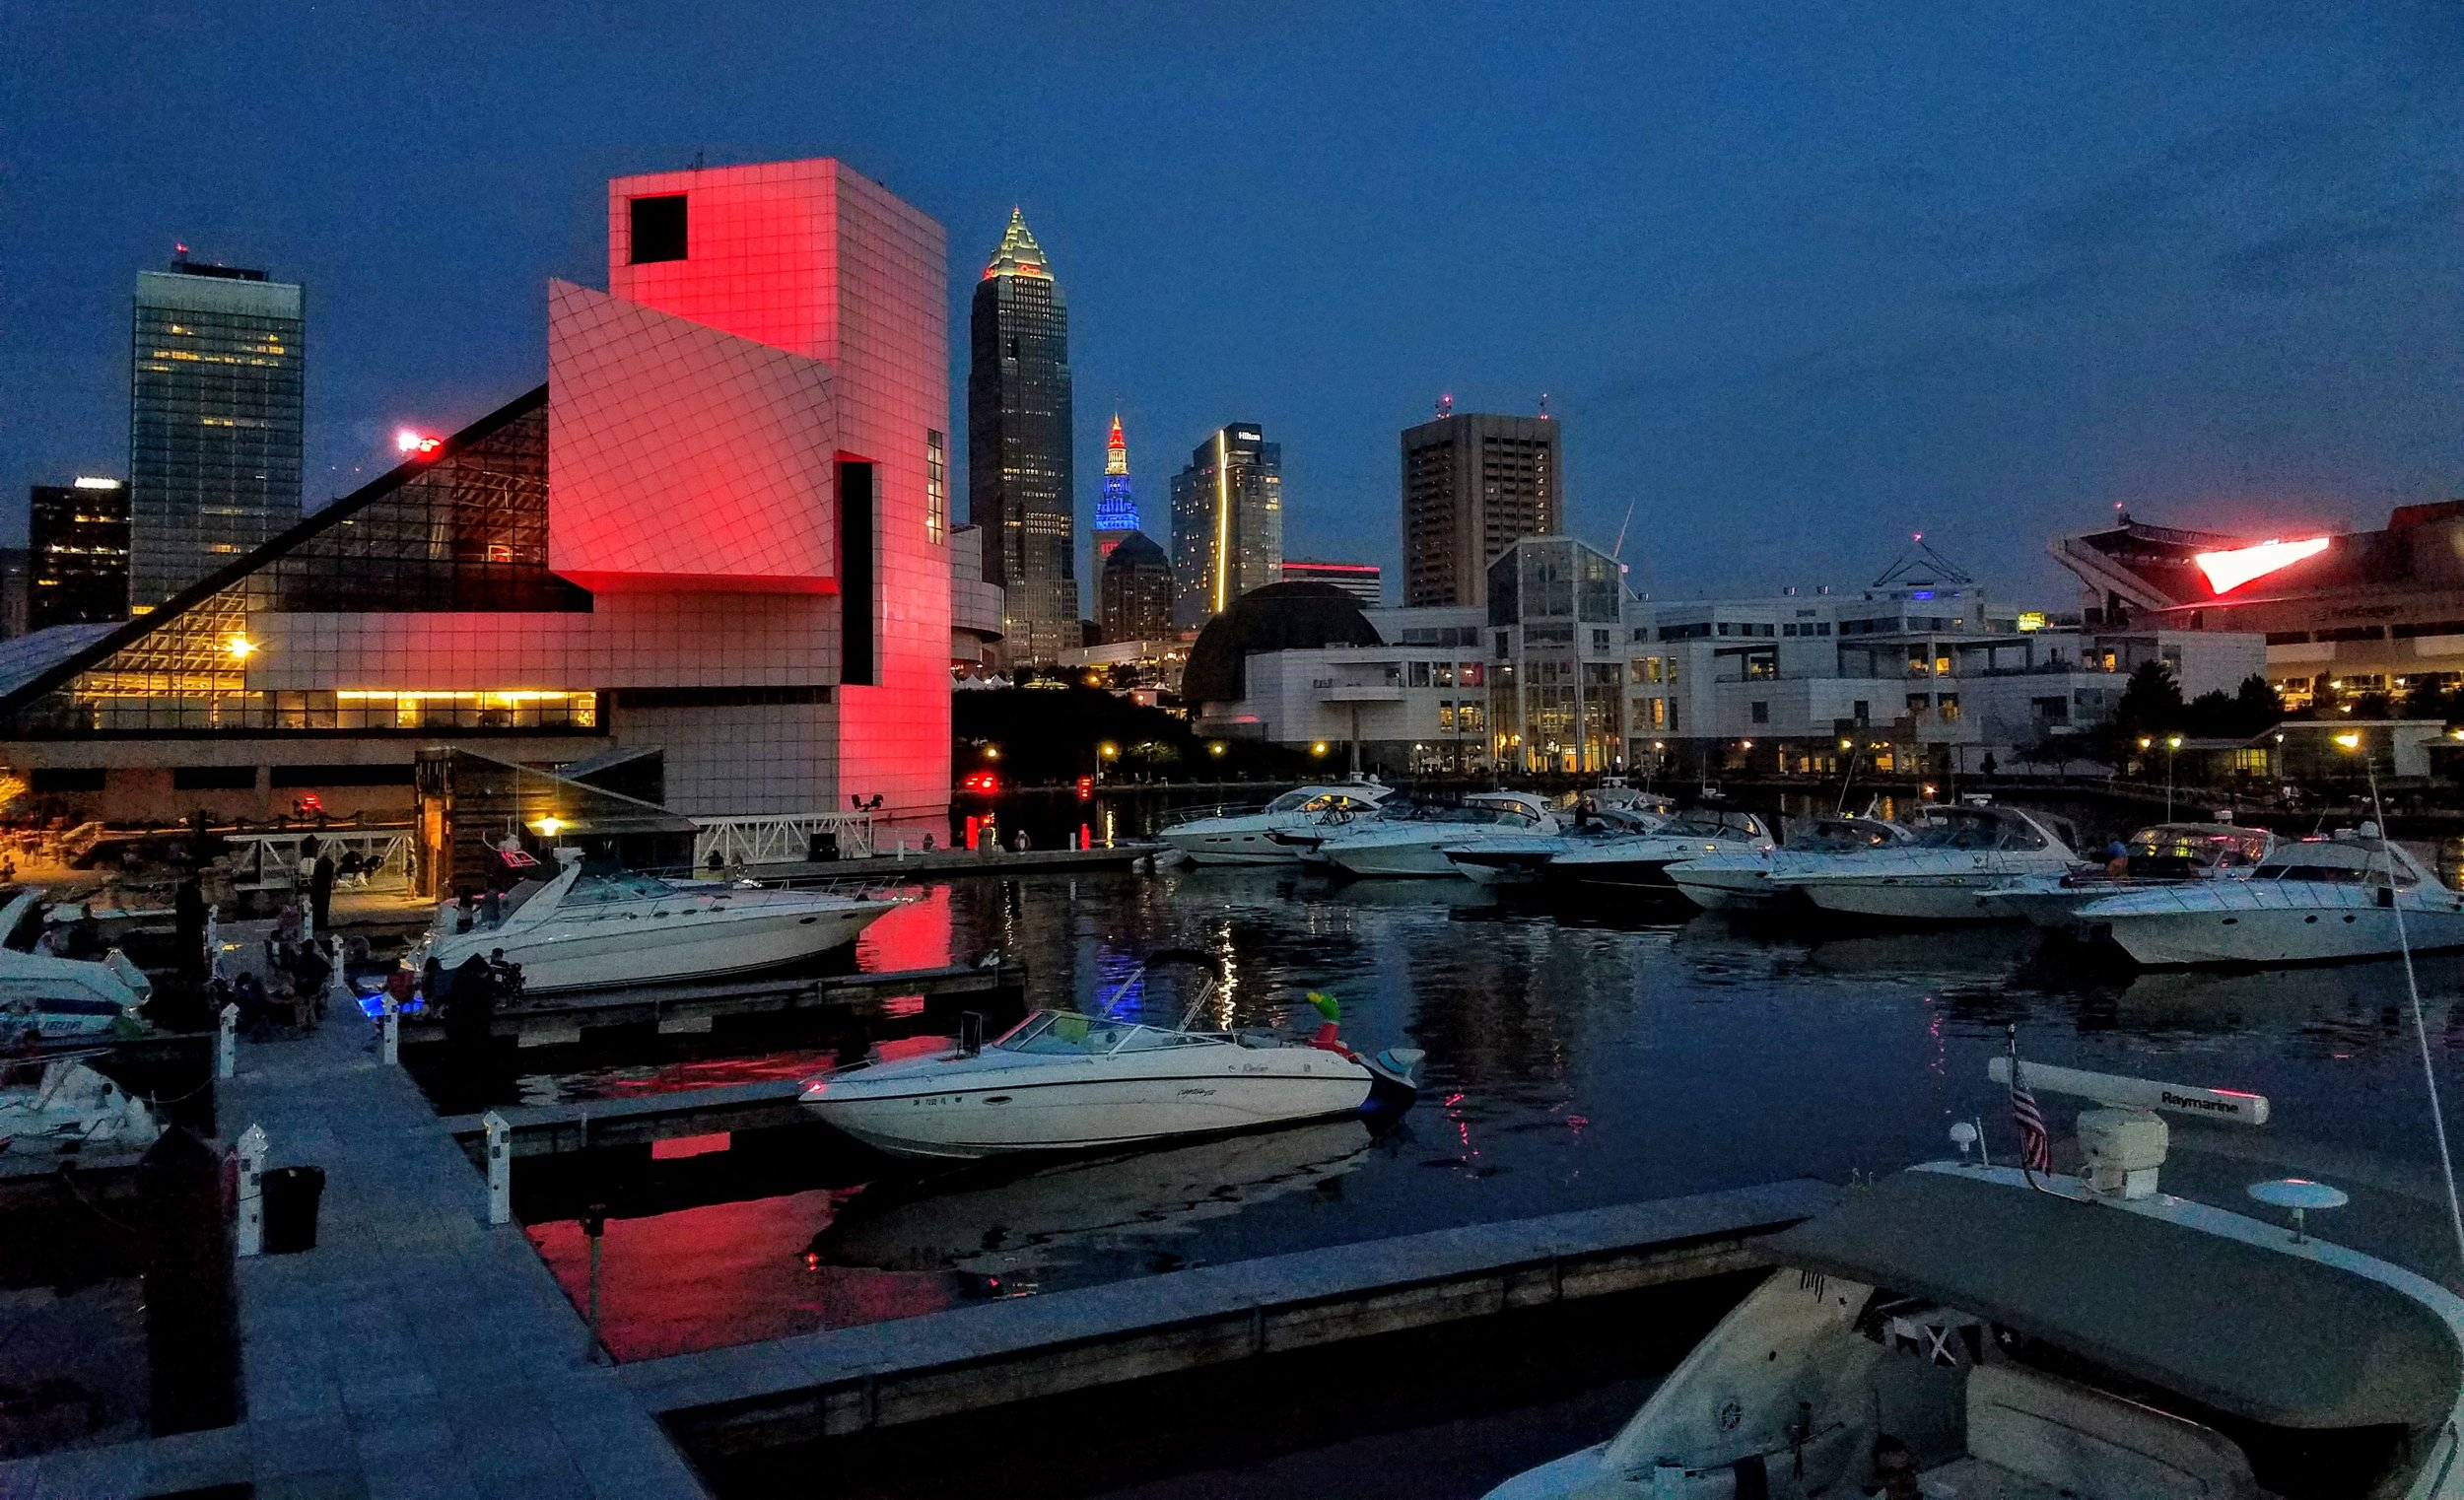 Back at the North Coast Harbor Marina on the night of the fourth of July with the Rock and Roll Hall of Fame dressed in Red and the Terminal Tower in Red White and Blue